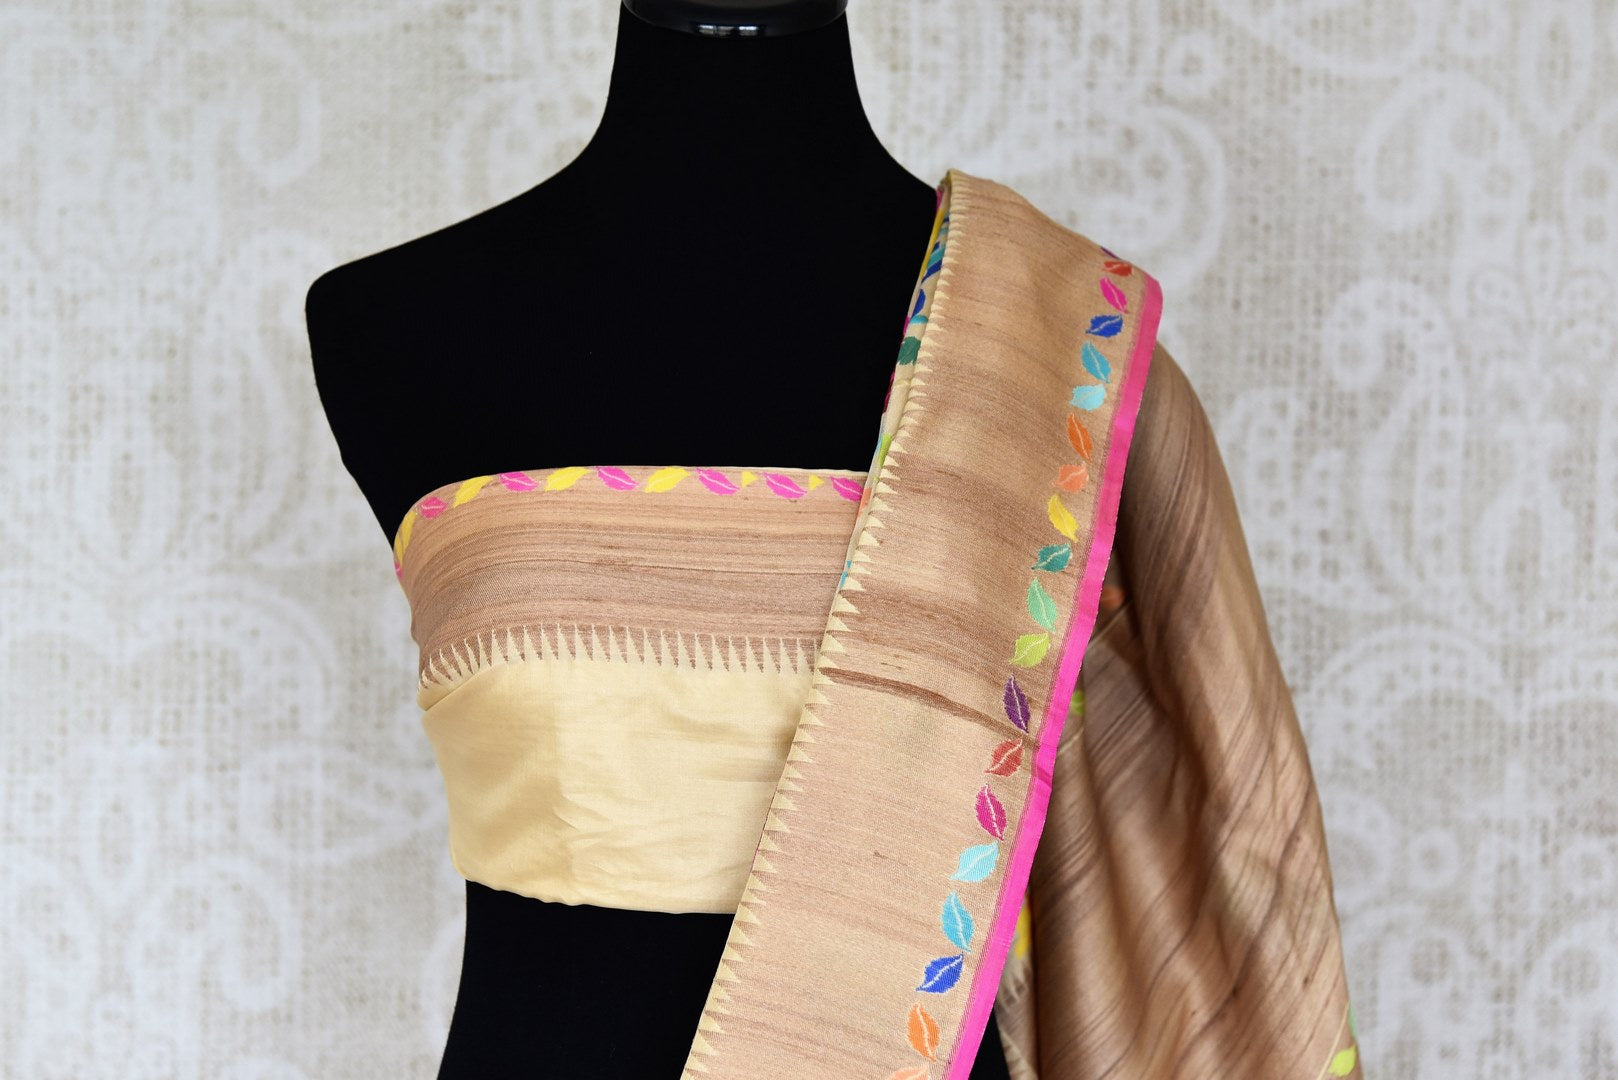 Shop beige Banarasi silk sari online in USA with bright floral jaal on border. Enhance your ethnic look with beautiful Indian designer sarees from Pure Elegance. Shop from a splendid collection of Banarasi sarees, traditional silk saris, Kanchipuram sarees from our exclusive Indian clothing store in USA.-blouse pallu